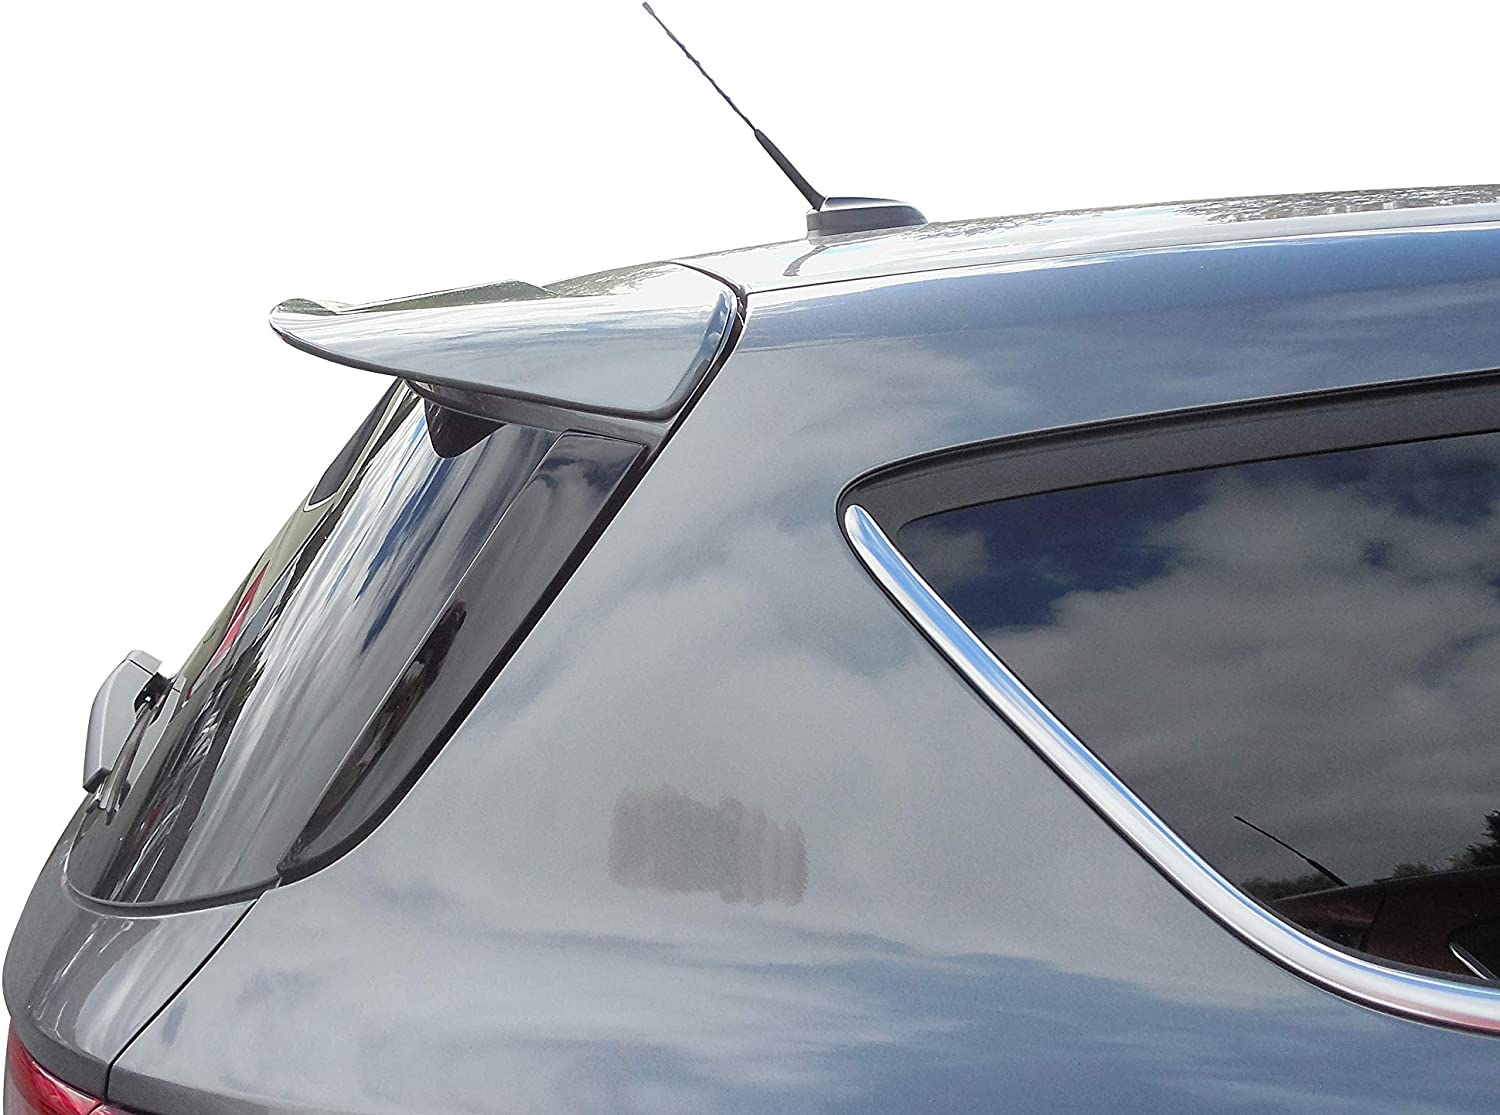 Custom Style Spoiler for the Ford Escape 2013-2019 Painted in the Factory Paint Code of Your Choice with 3M tape included 530 J7